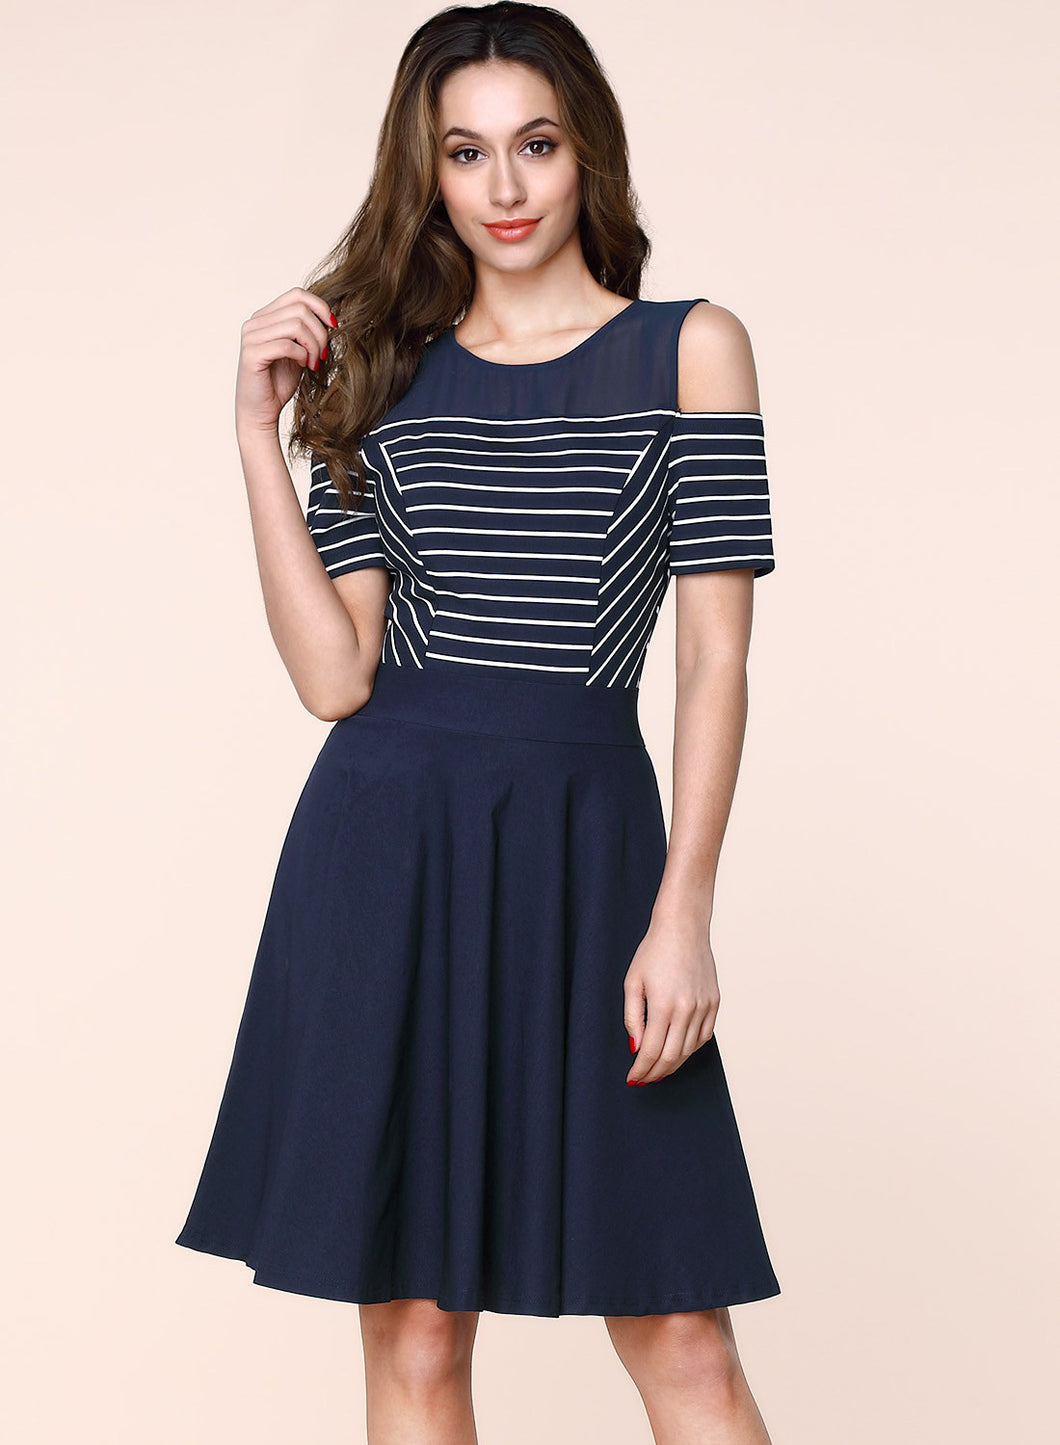 Sexy Navy Style Business Mini Dress - The Perfect Match